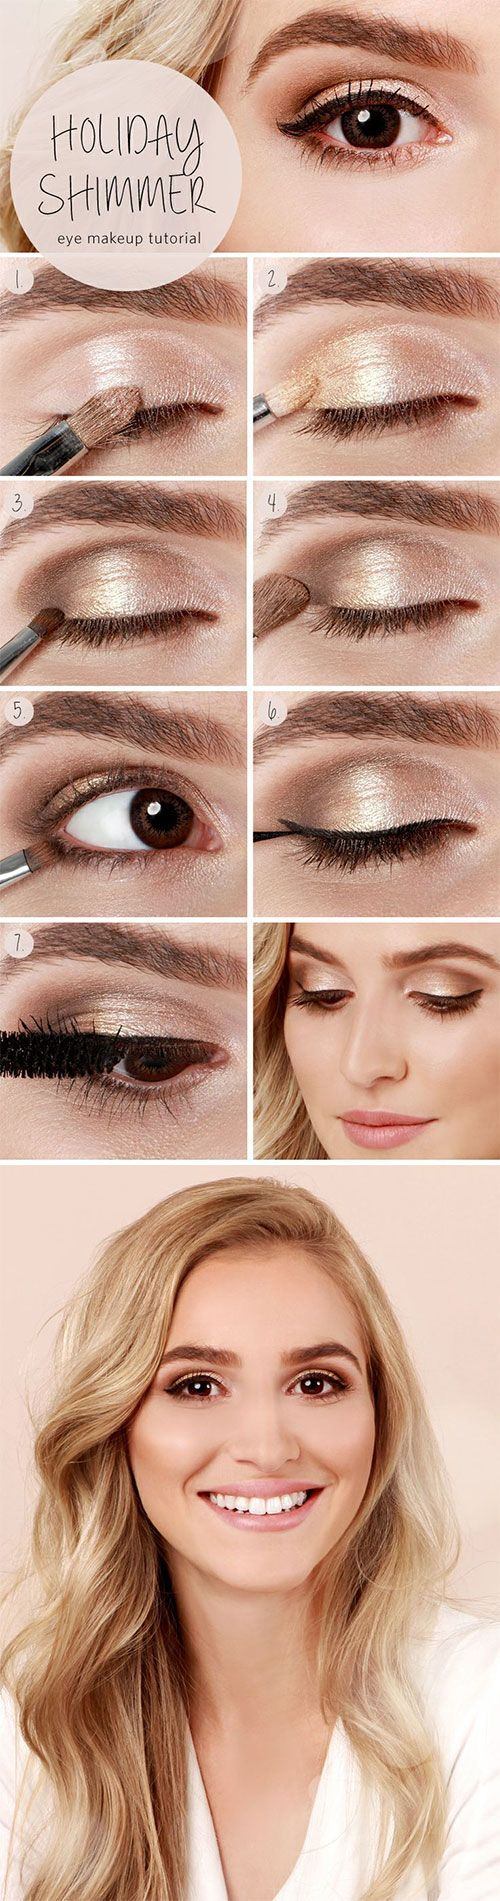 Simple Eid Shimmer Eye Makeup Step by Step